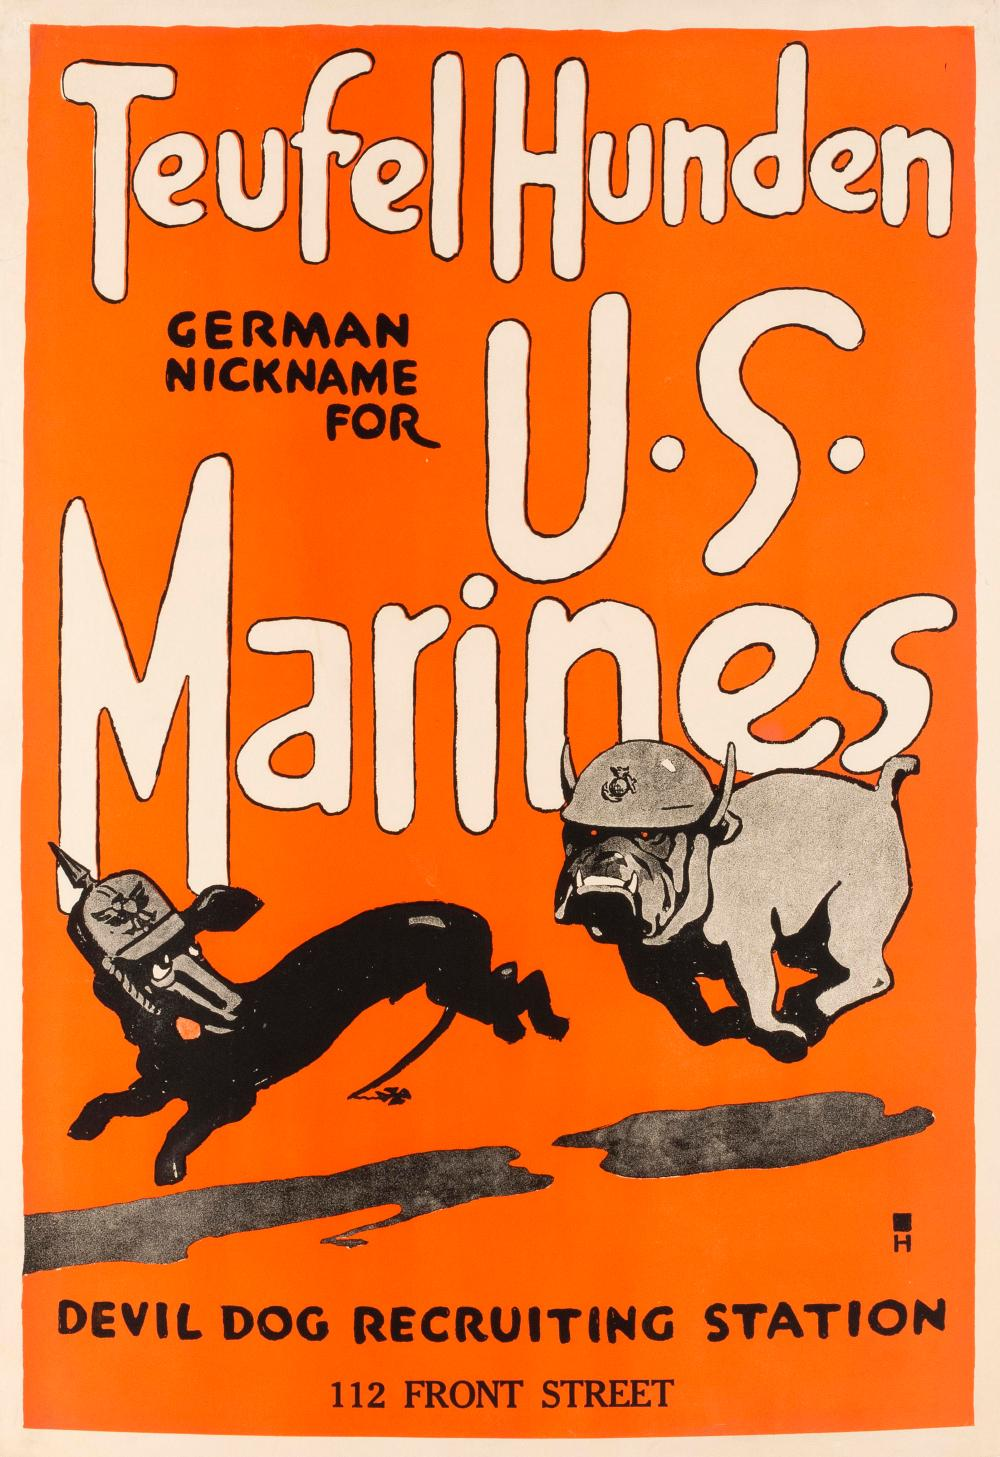 """TEUFEL HUNDEN GERMAN NICKNAME FOR U.S. MARINES DEVIL DOG RECRUITING STATION 112 FRONT STREET"" WORLD WAR I POSTER By Charles B. Fall..."